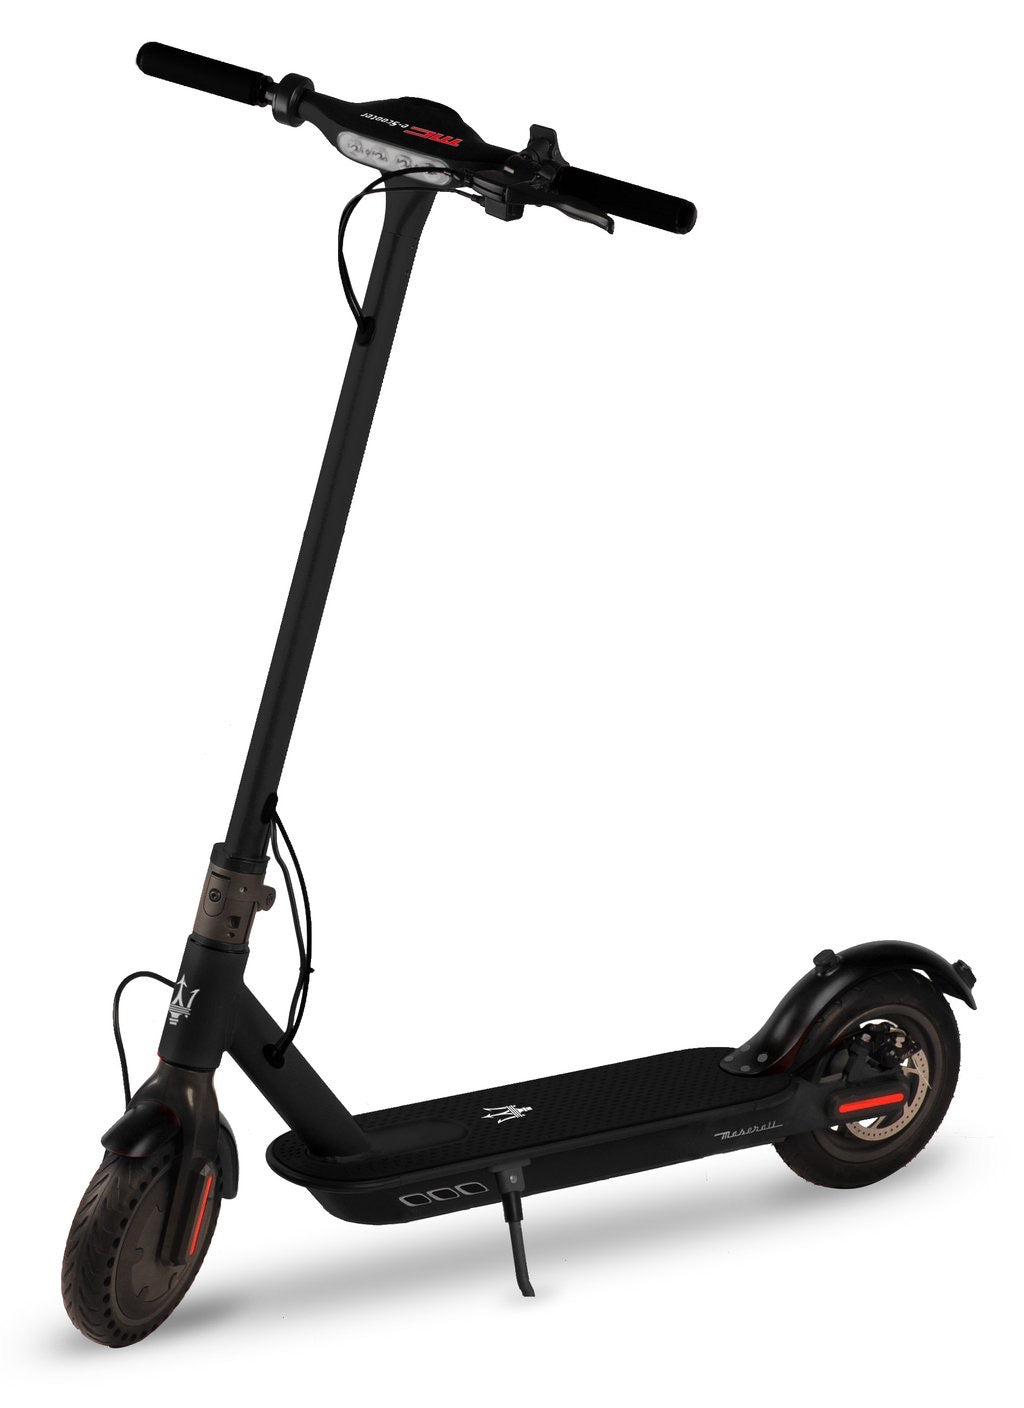 "Maserati - E-Scooter - 8.5"" - Gray (LG 36V7.8AH - Battery) - Black"